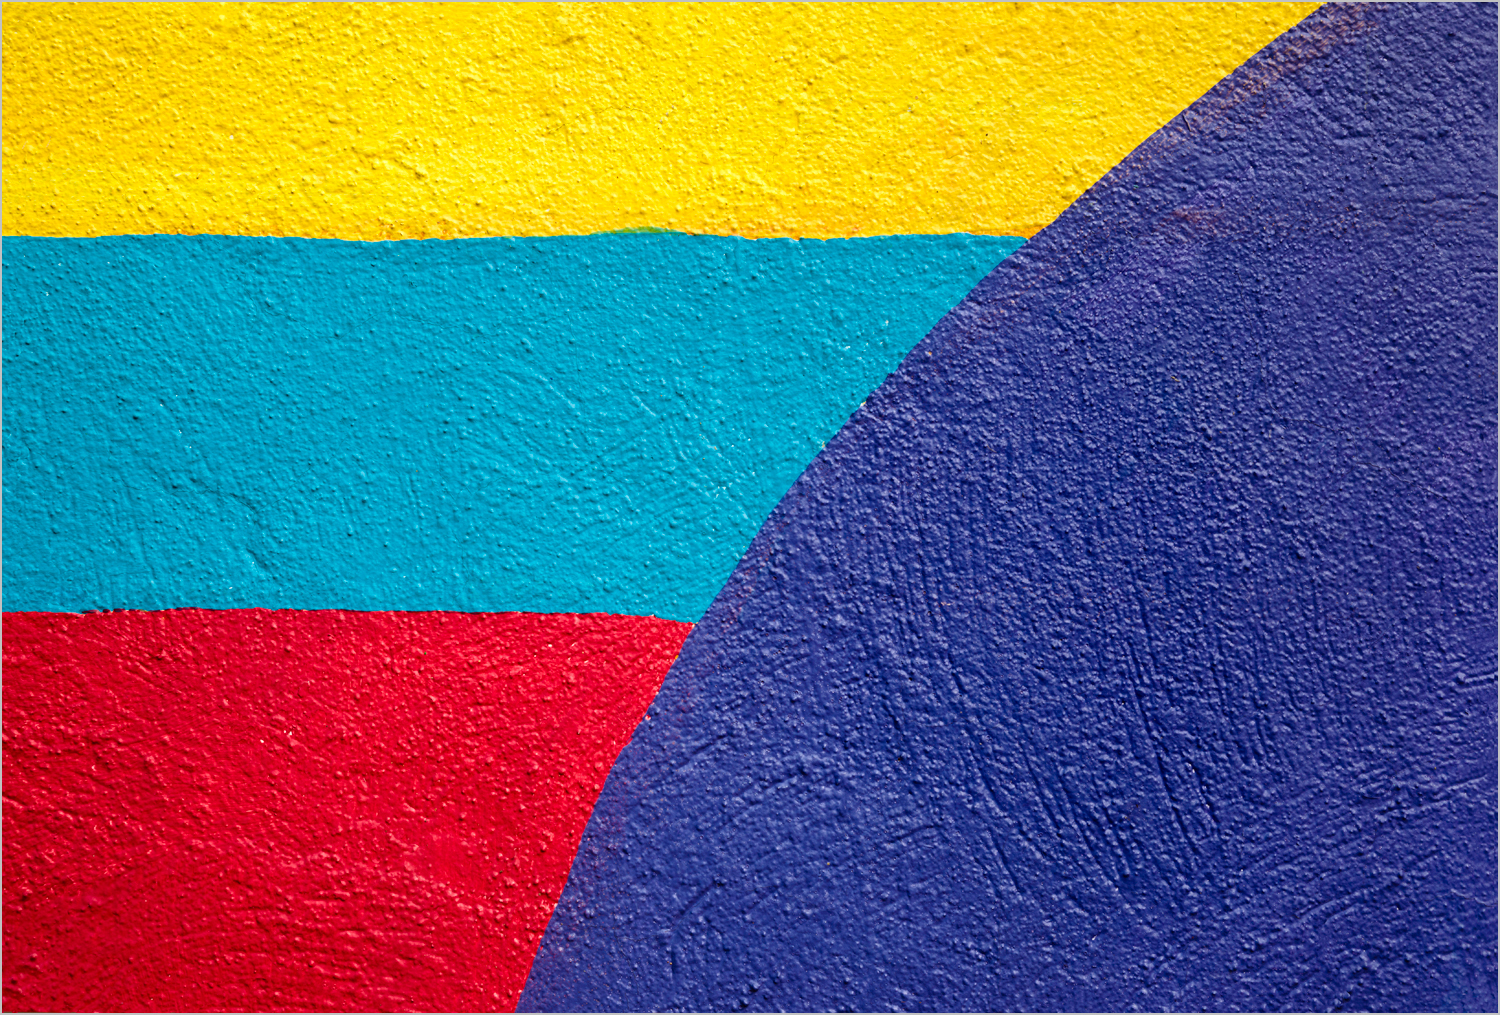 Mural Abstract 3